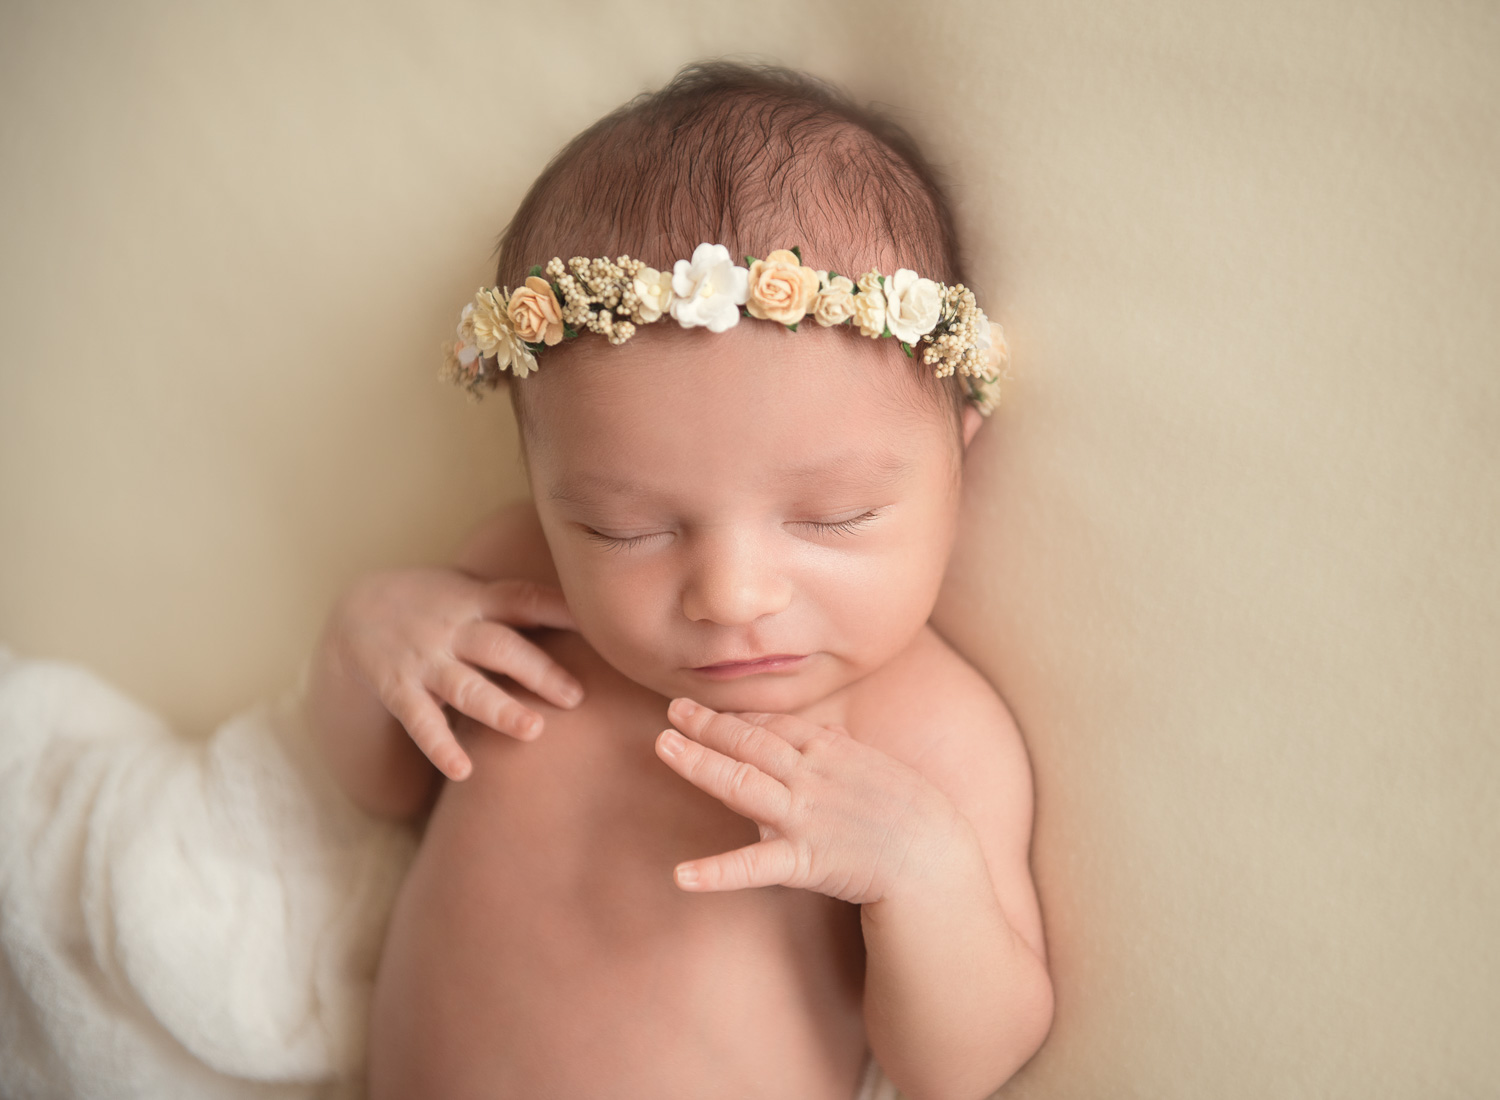 newborn photography baby with halo by auckland baby photographer siobhan kelly photography